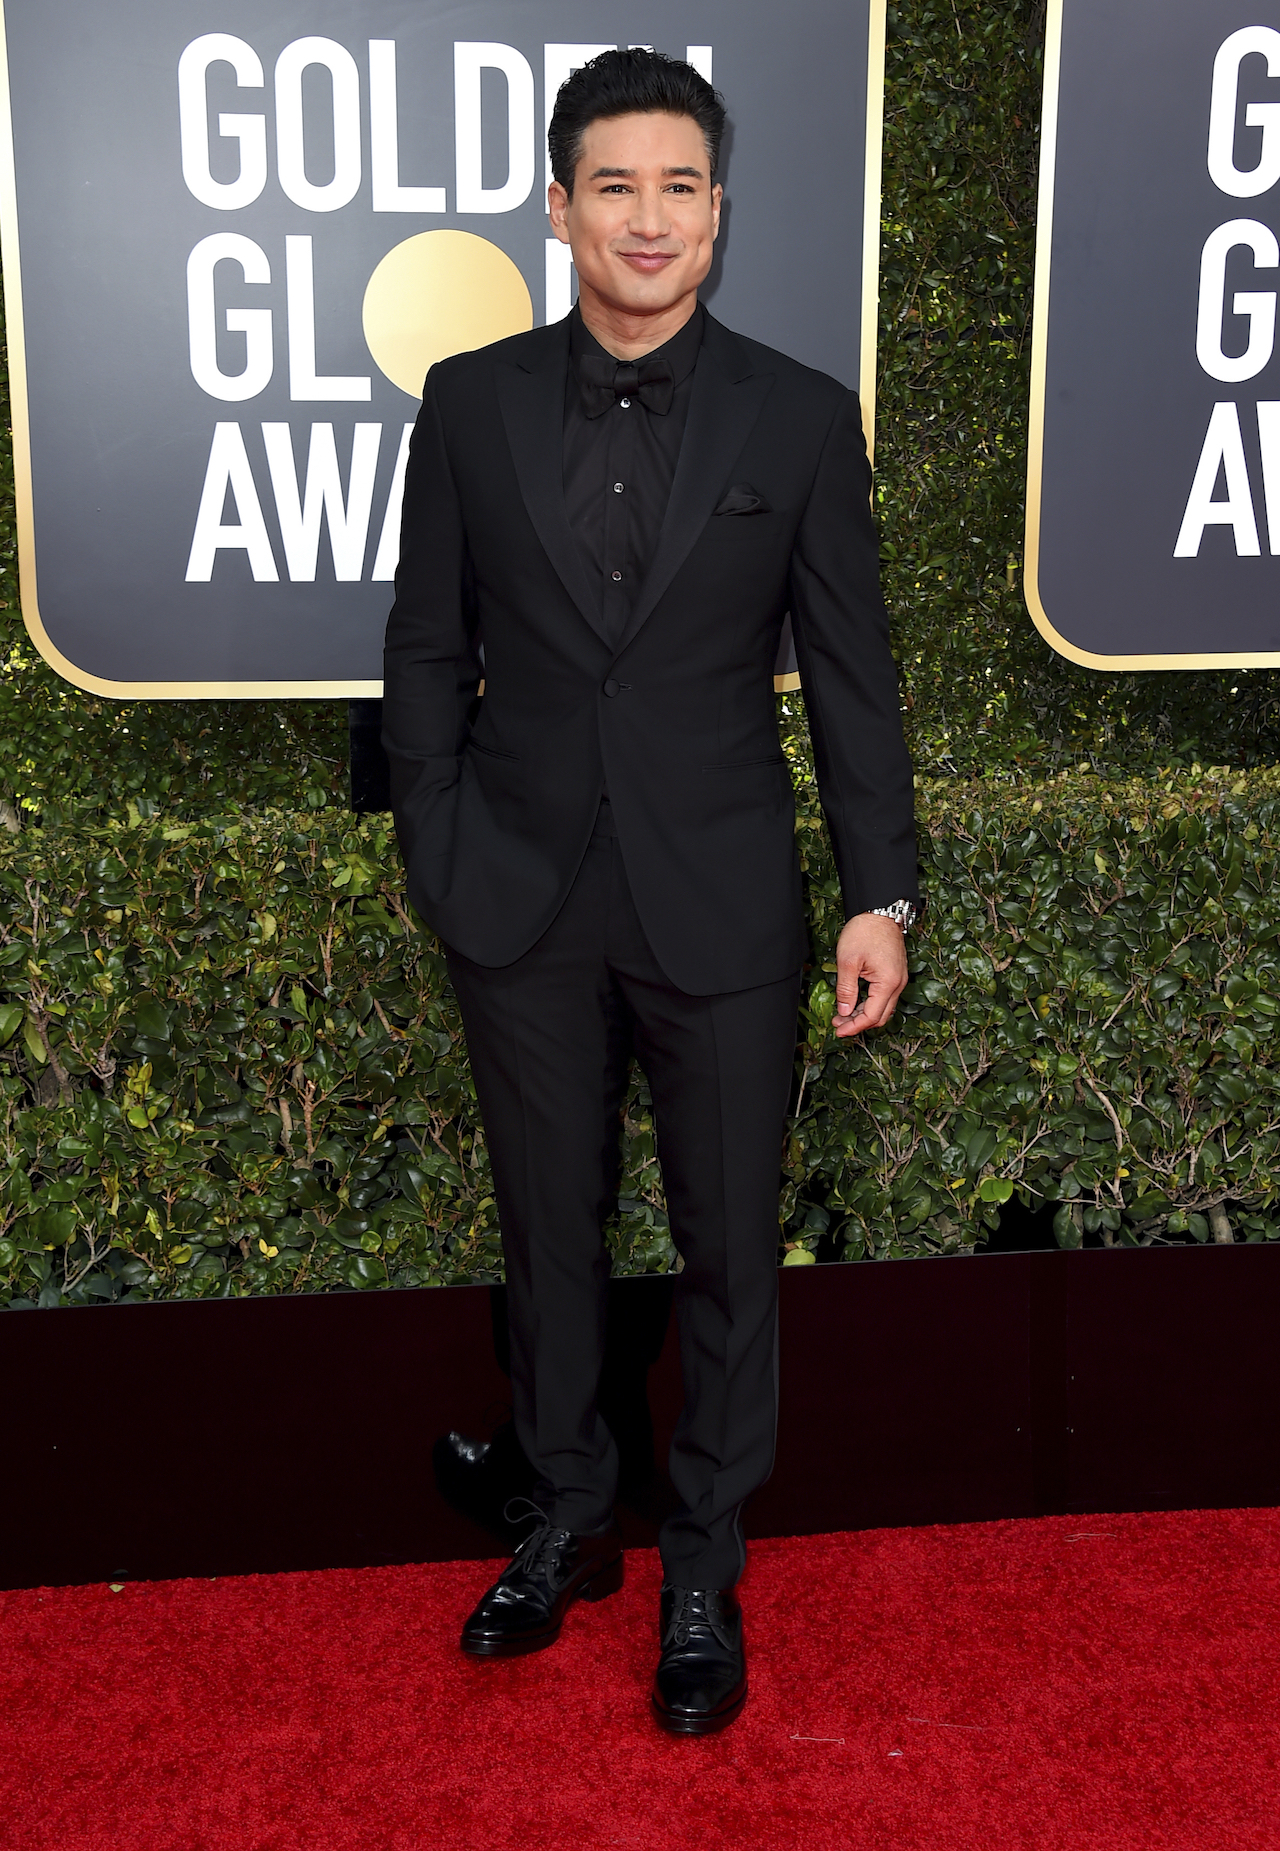 "<div class=""meta image-caption""><div class=""origin-logo origin-image ap""><span>AP</span></div><span class=""caption-text"">Mario Lopez arrives at the 76th annual Golden Globe Awards at the Beverly Hilton Hotel on Sunday, Jan. 6, 2019, in Beverly Hills, Calif. (Jordan Strauss/Invision/AP)</span></div>"